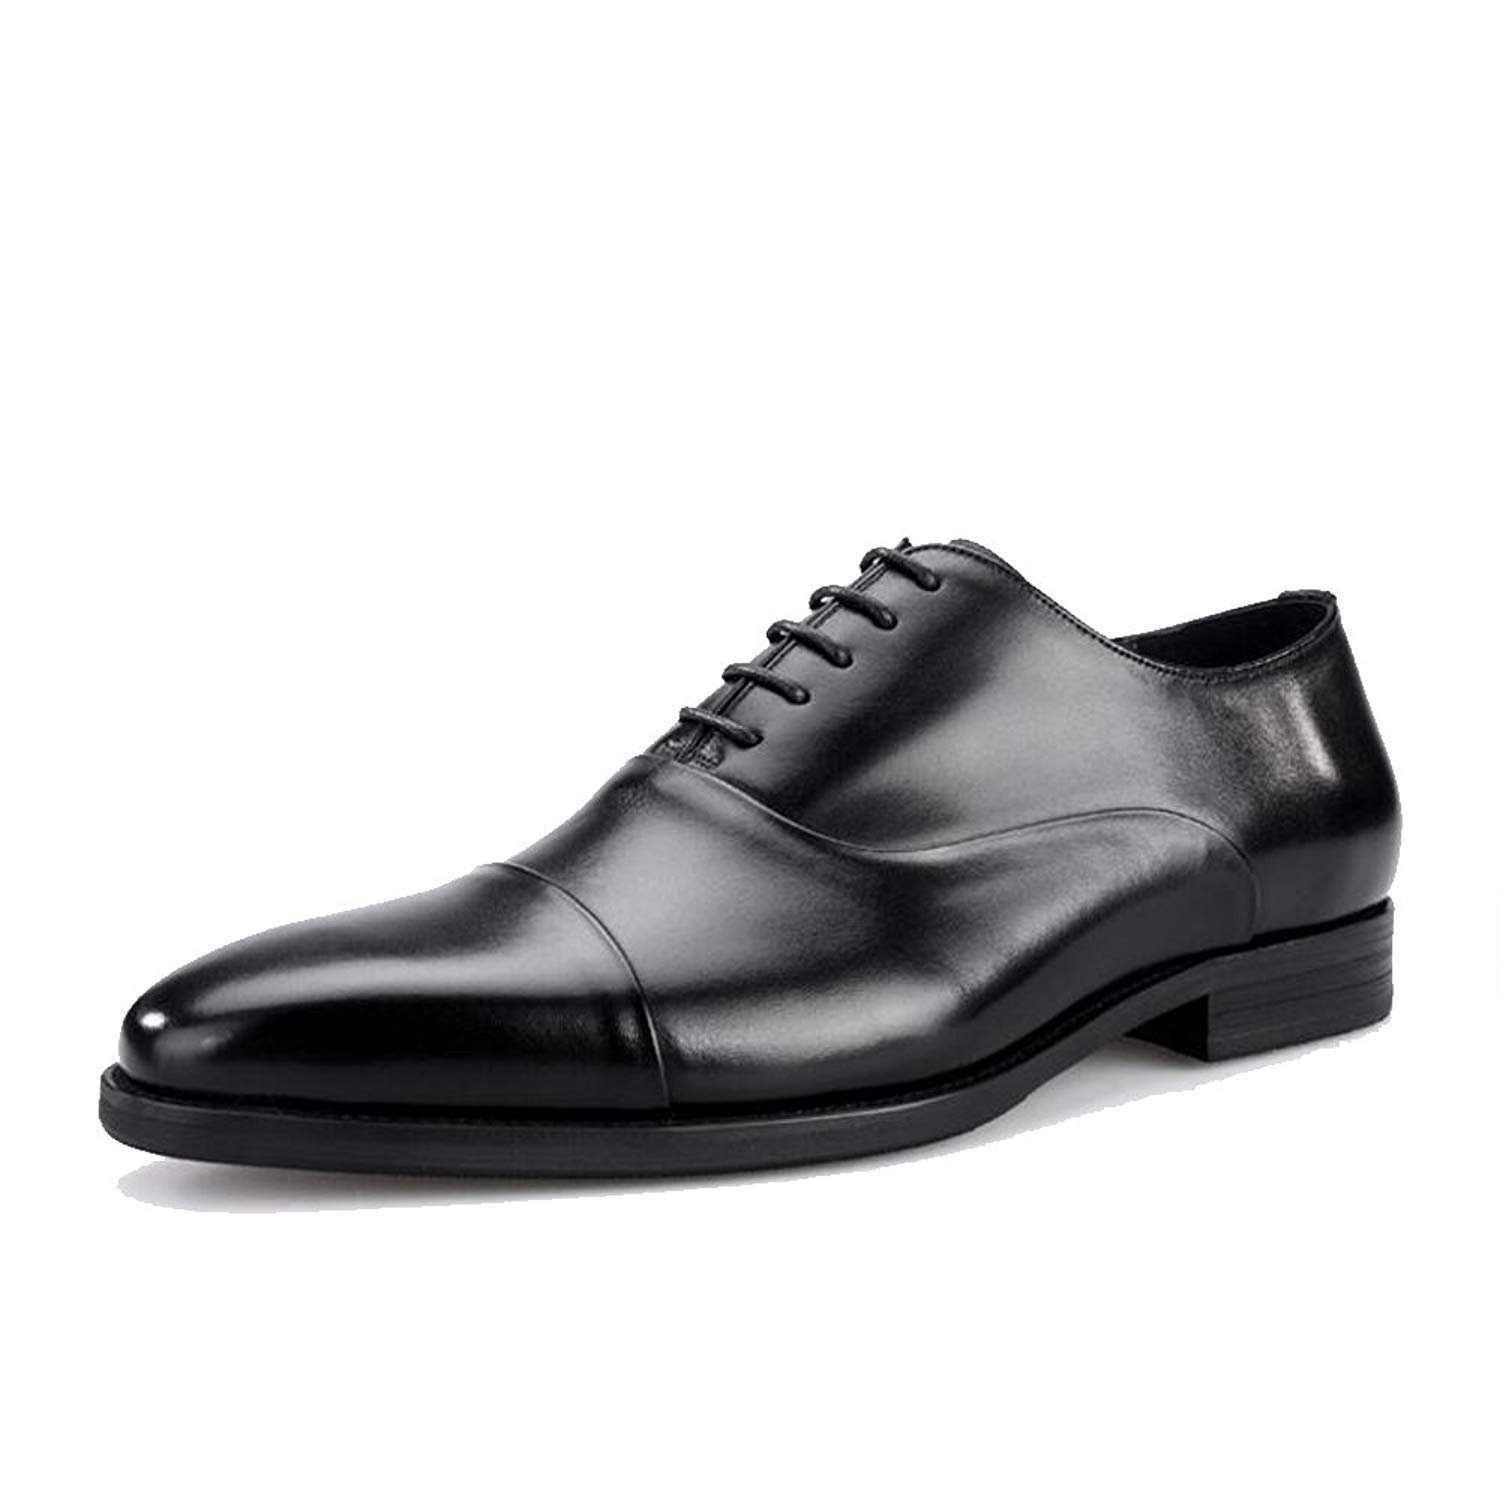 JUNBOSI Three-Joint Men's Shoes - High-end Men's Leather Shoes - Lace up Formal Business Shoes. Four Seasons Size 6-12 (Color : Black, Size : 43)